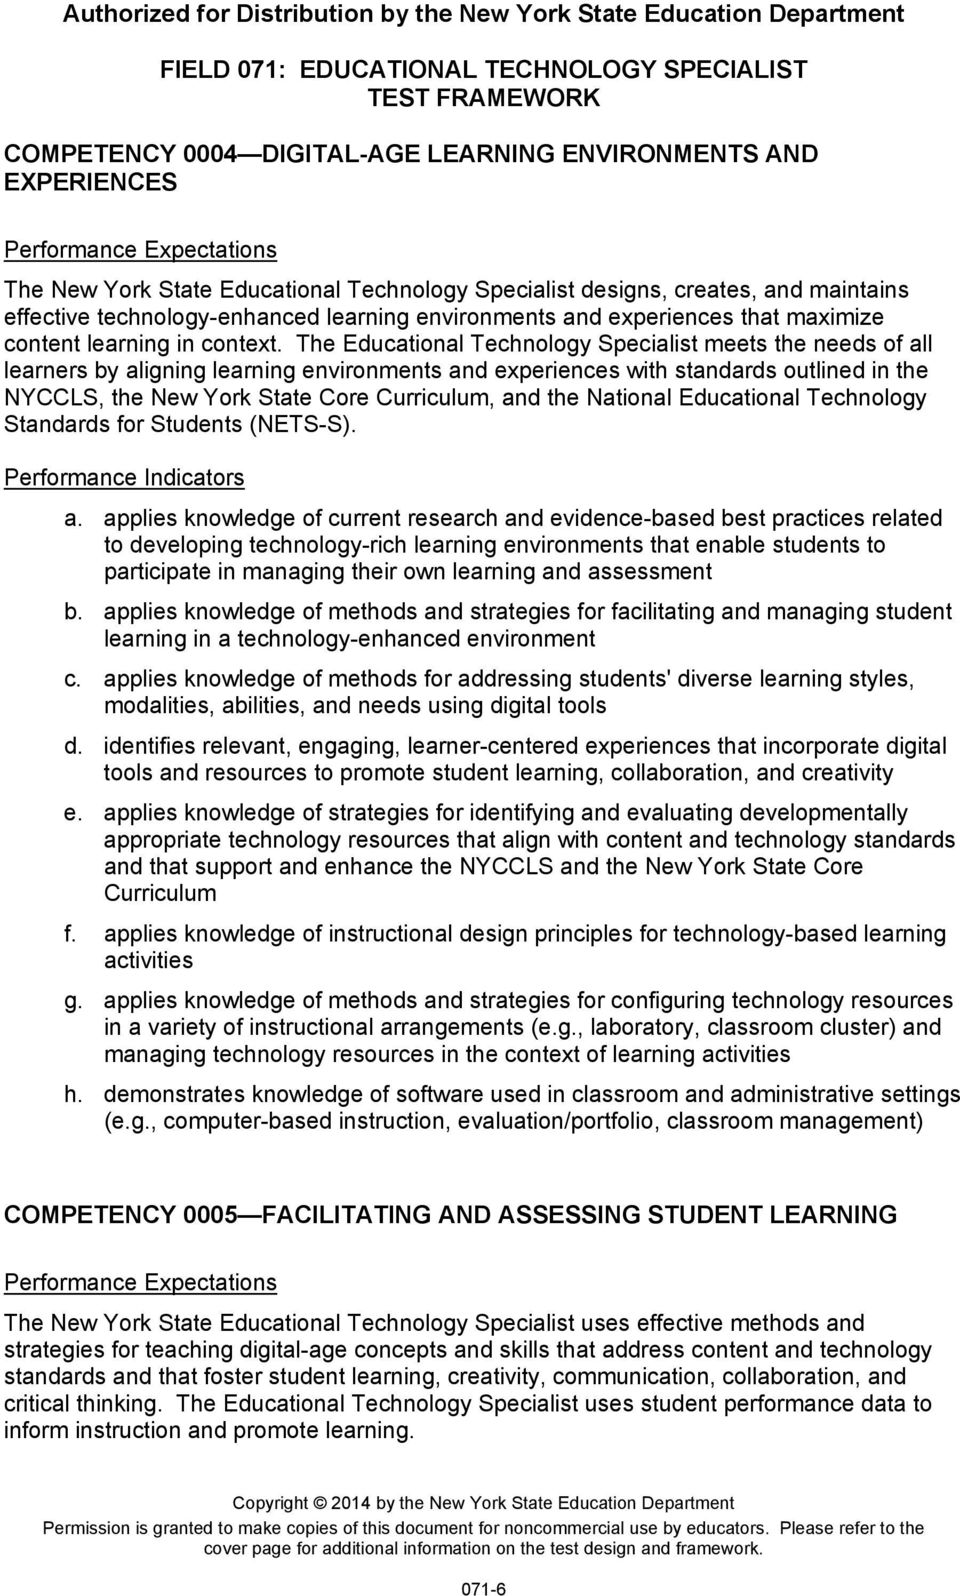 The Educational Technology Specialist meets the needs of all learners by aligning learning environments and experiences with standards outlined in the NYCCLS, the New York State Core Curriculum, and